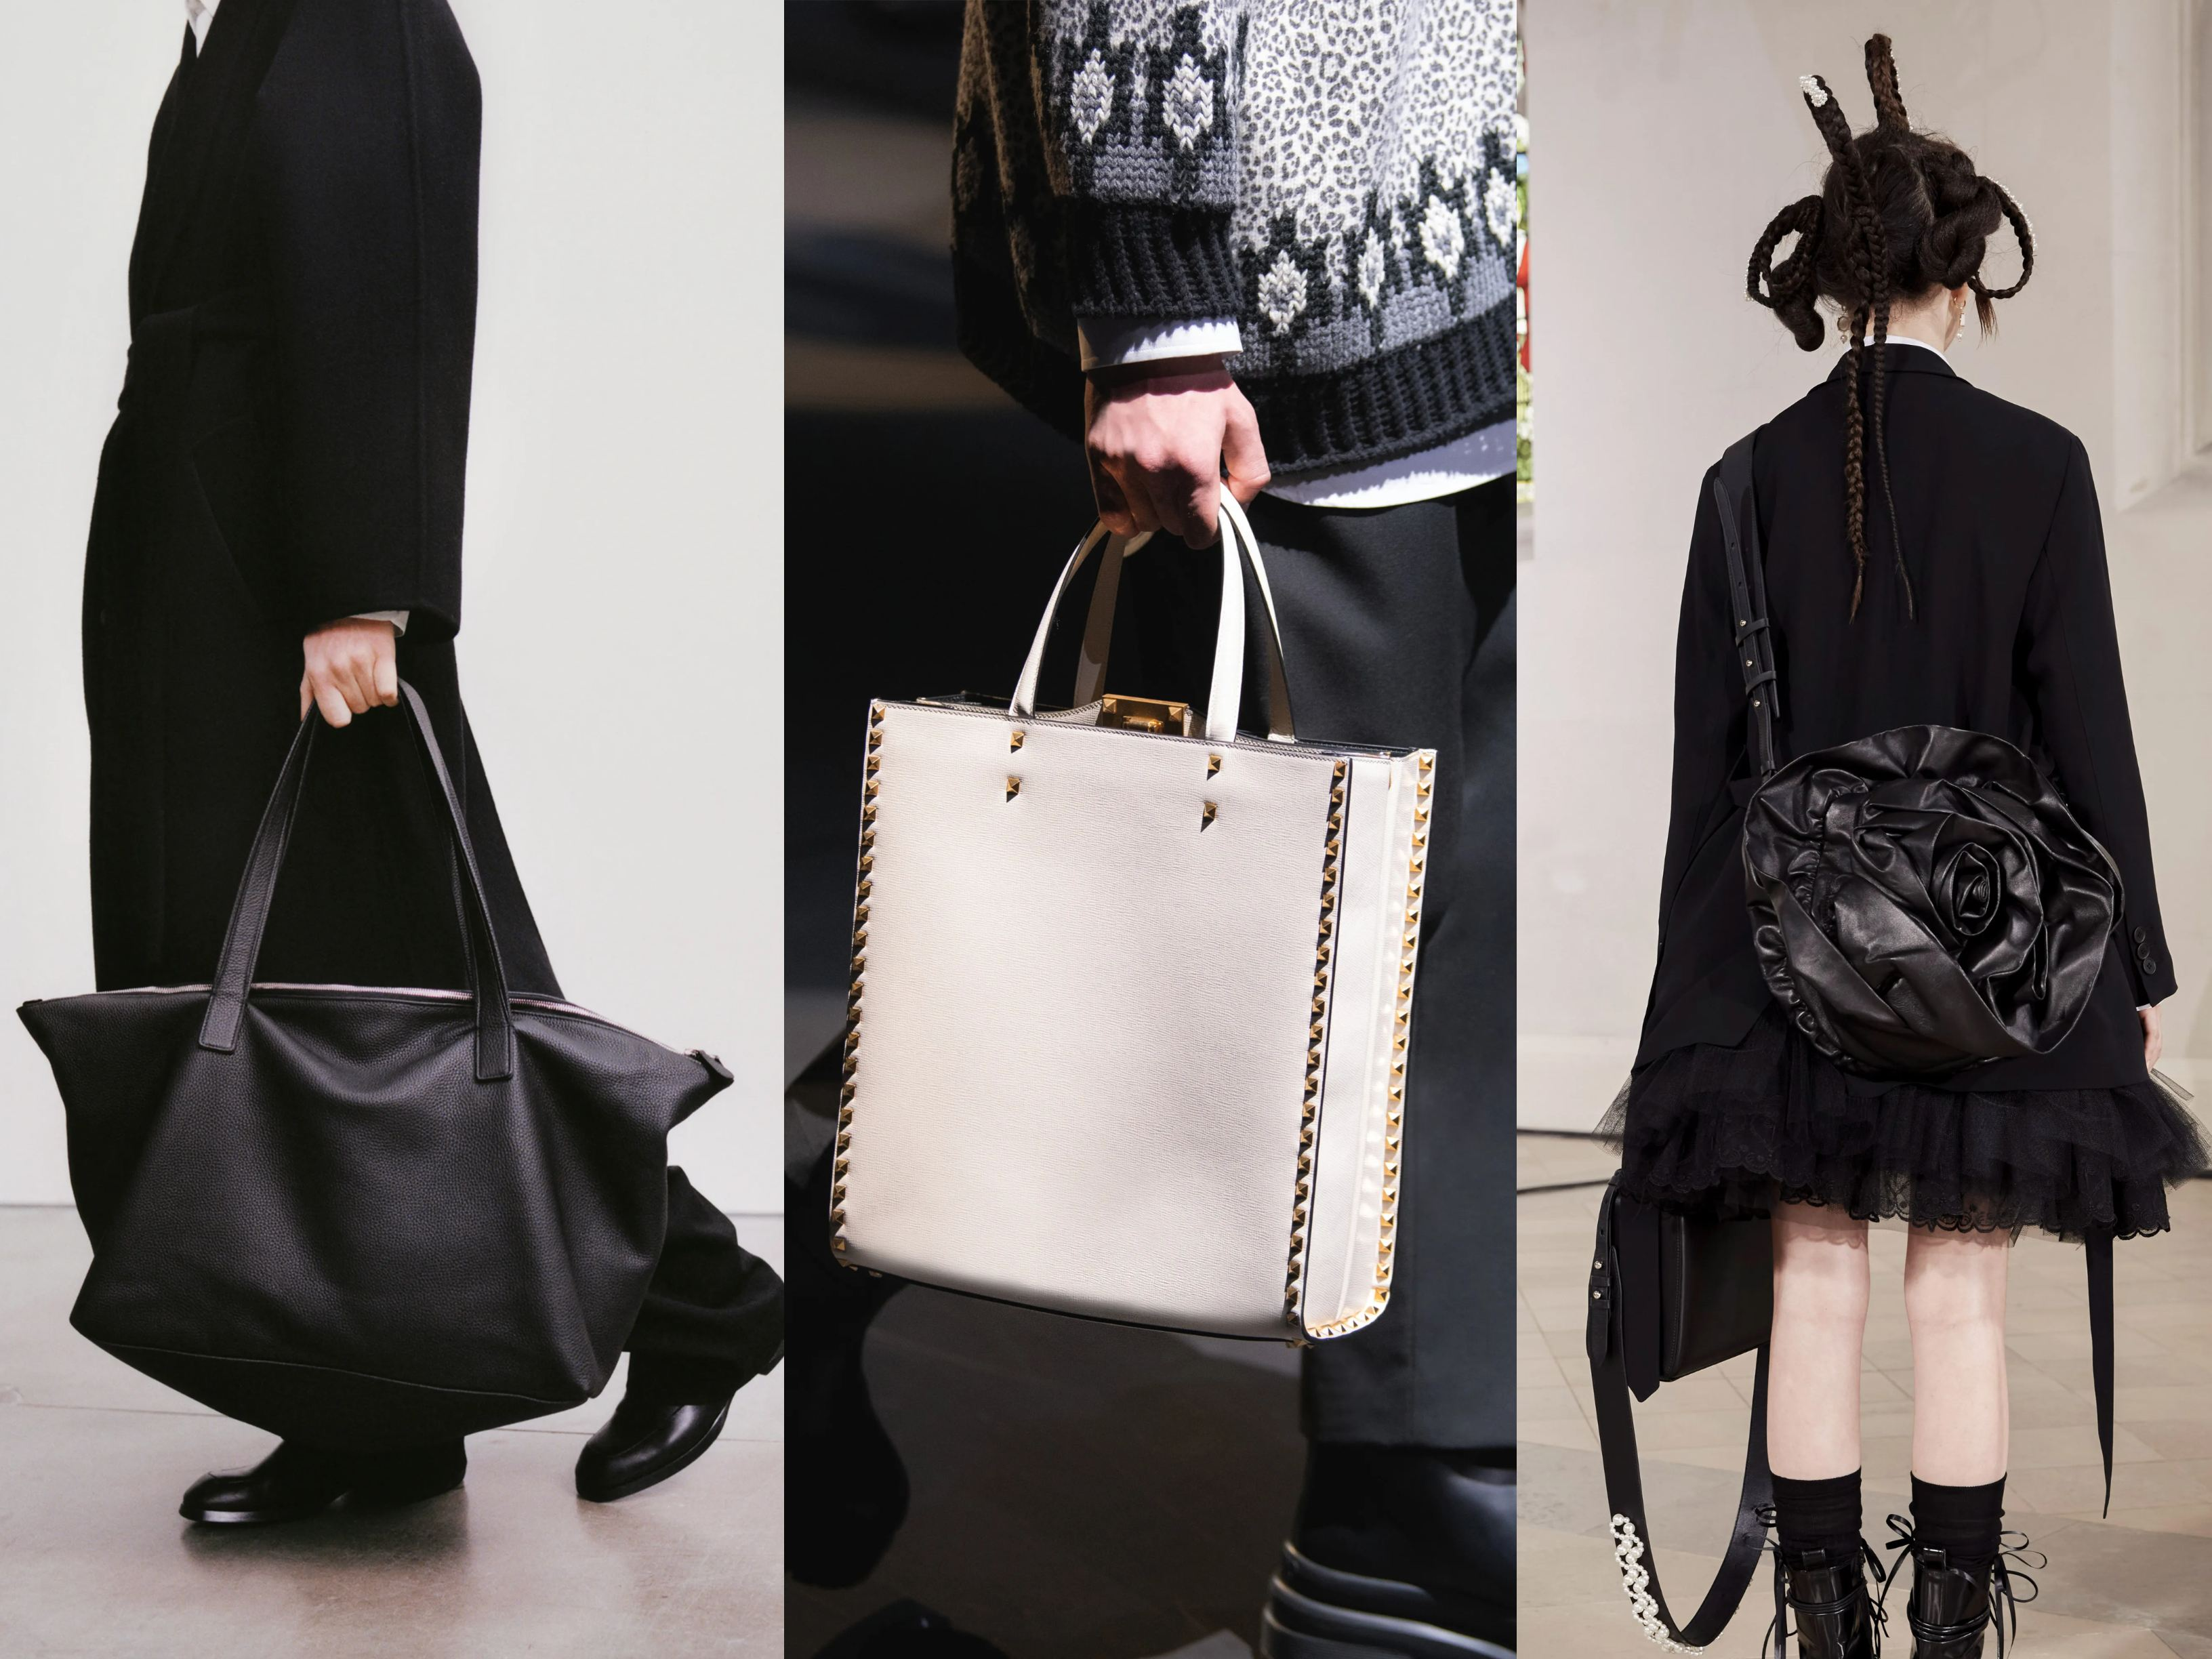 Models wearing AW21 trends tote bags